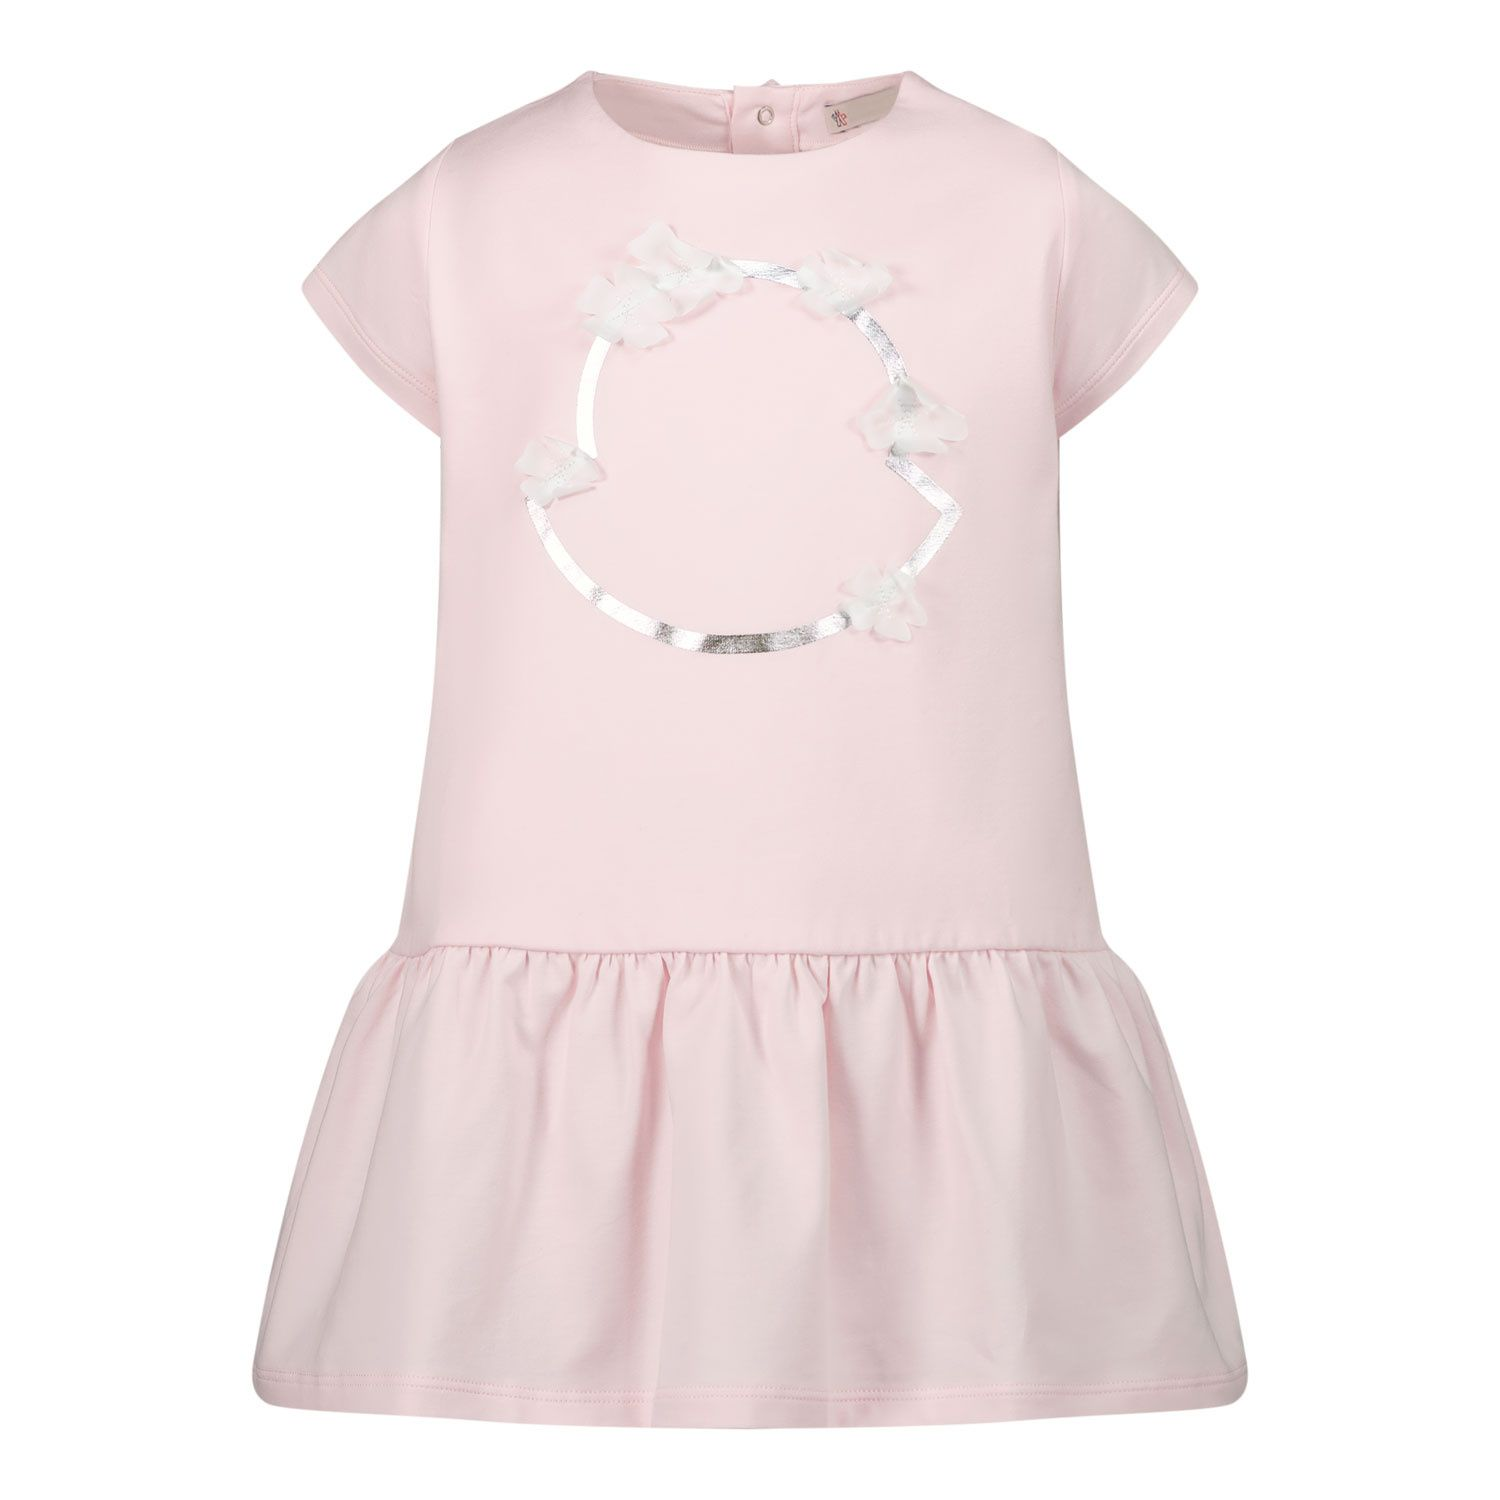 Picture of Moncler 8!72410 baby dress light pink